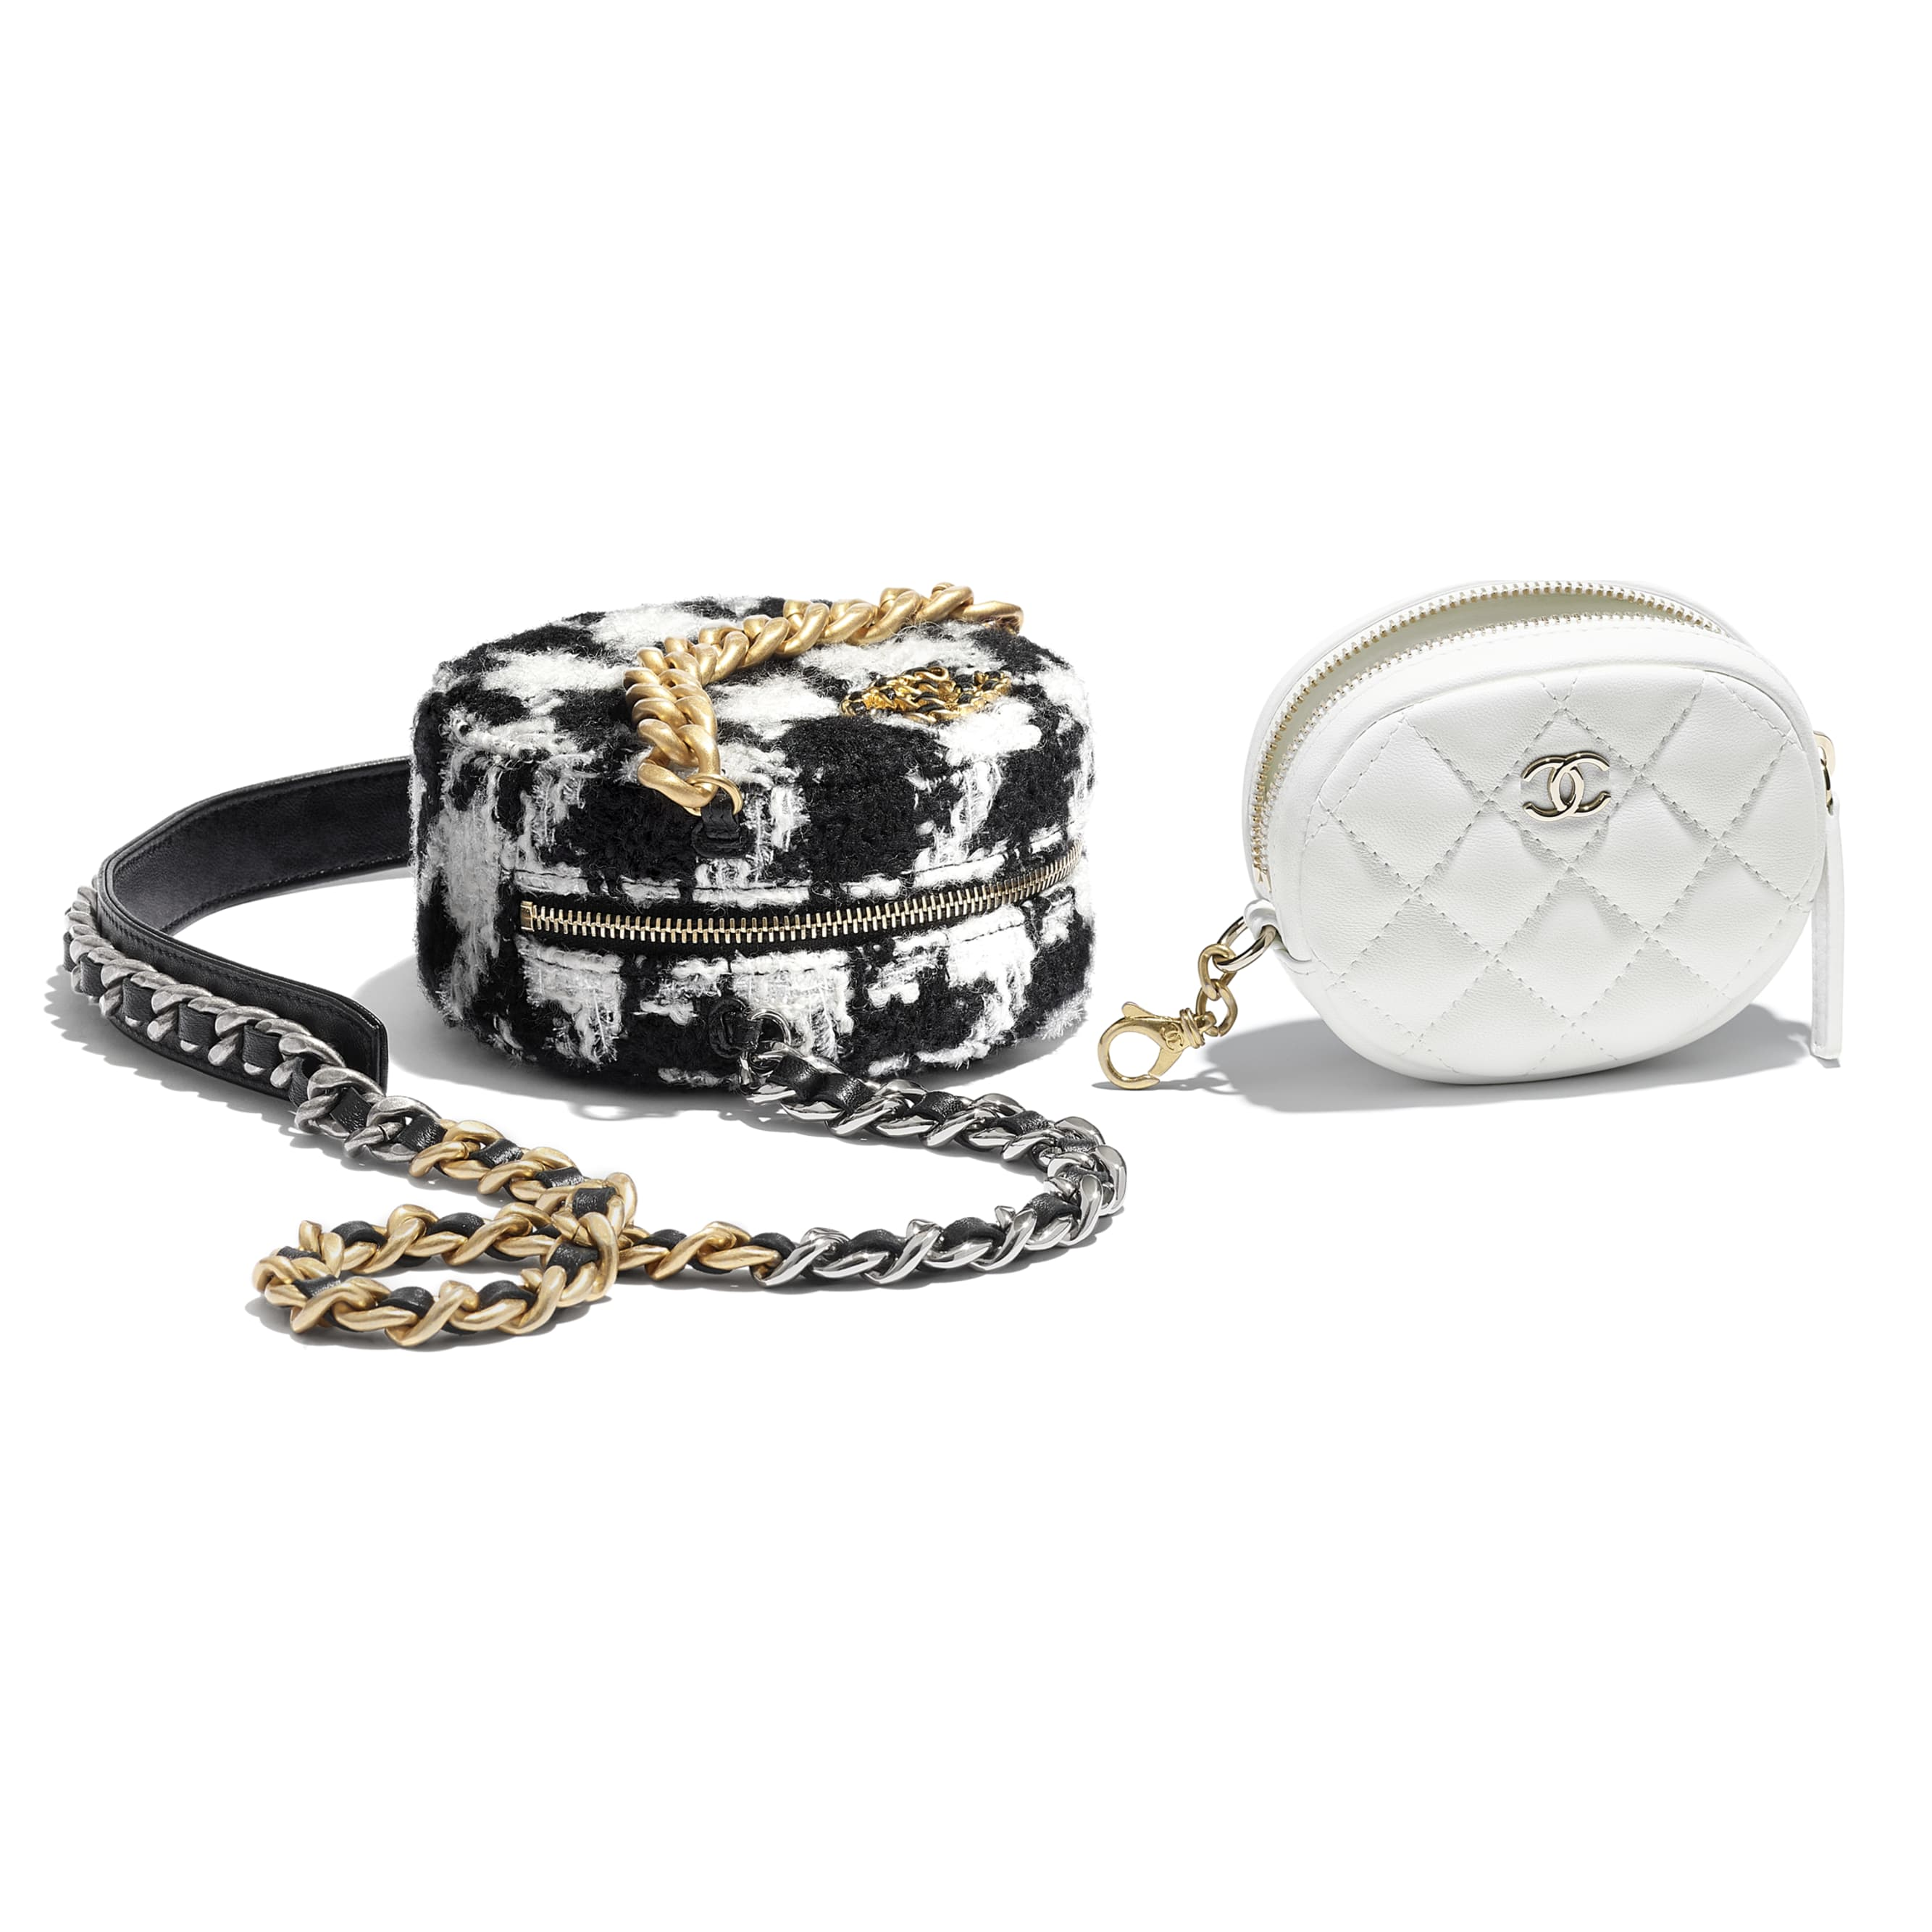 CHANEL 19 Clutch with Chain & Coin Purse - Black & White - Wool Tweed, Lambskin, Gold-Tone, Silver-Tone & Ruthenium-Finish Metal - Extra view - see standard sized version